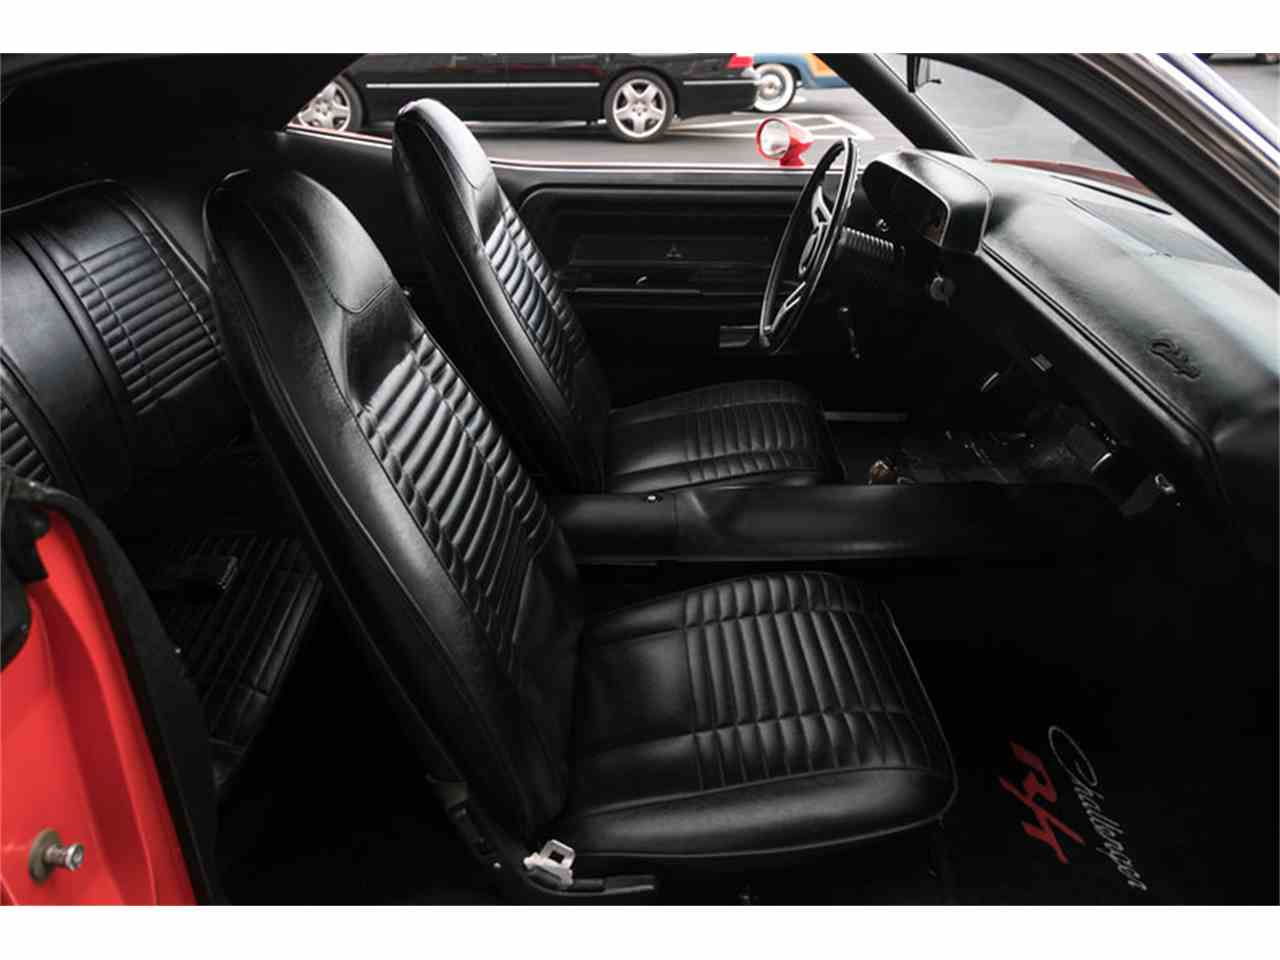 Large Picture of '70 Dodge Challenger R/T located in Missouri - $89,995.00 - MF41